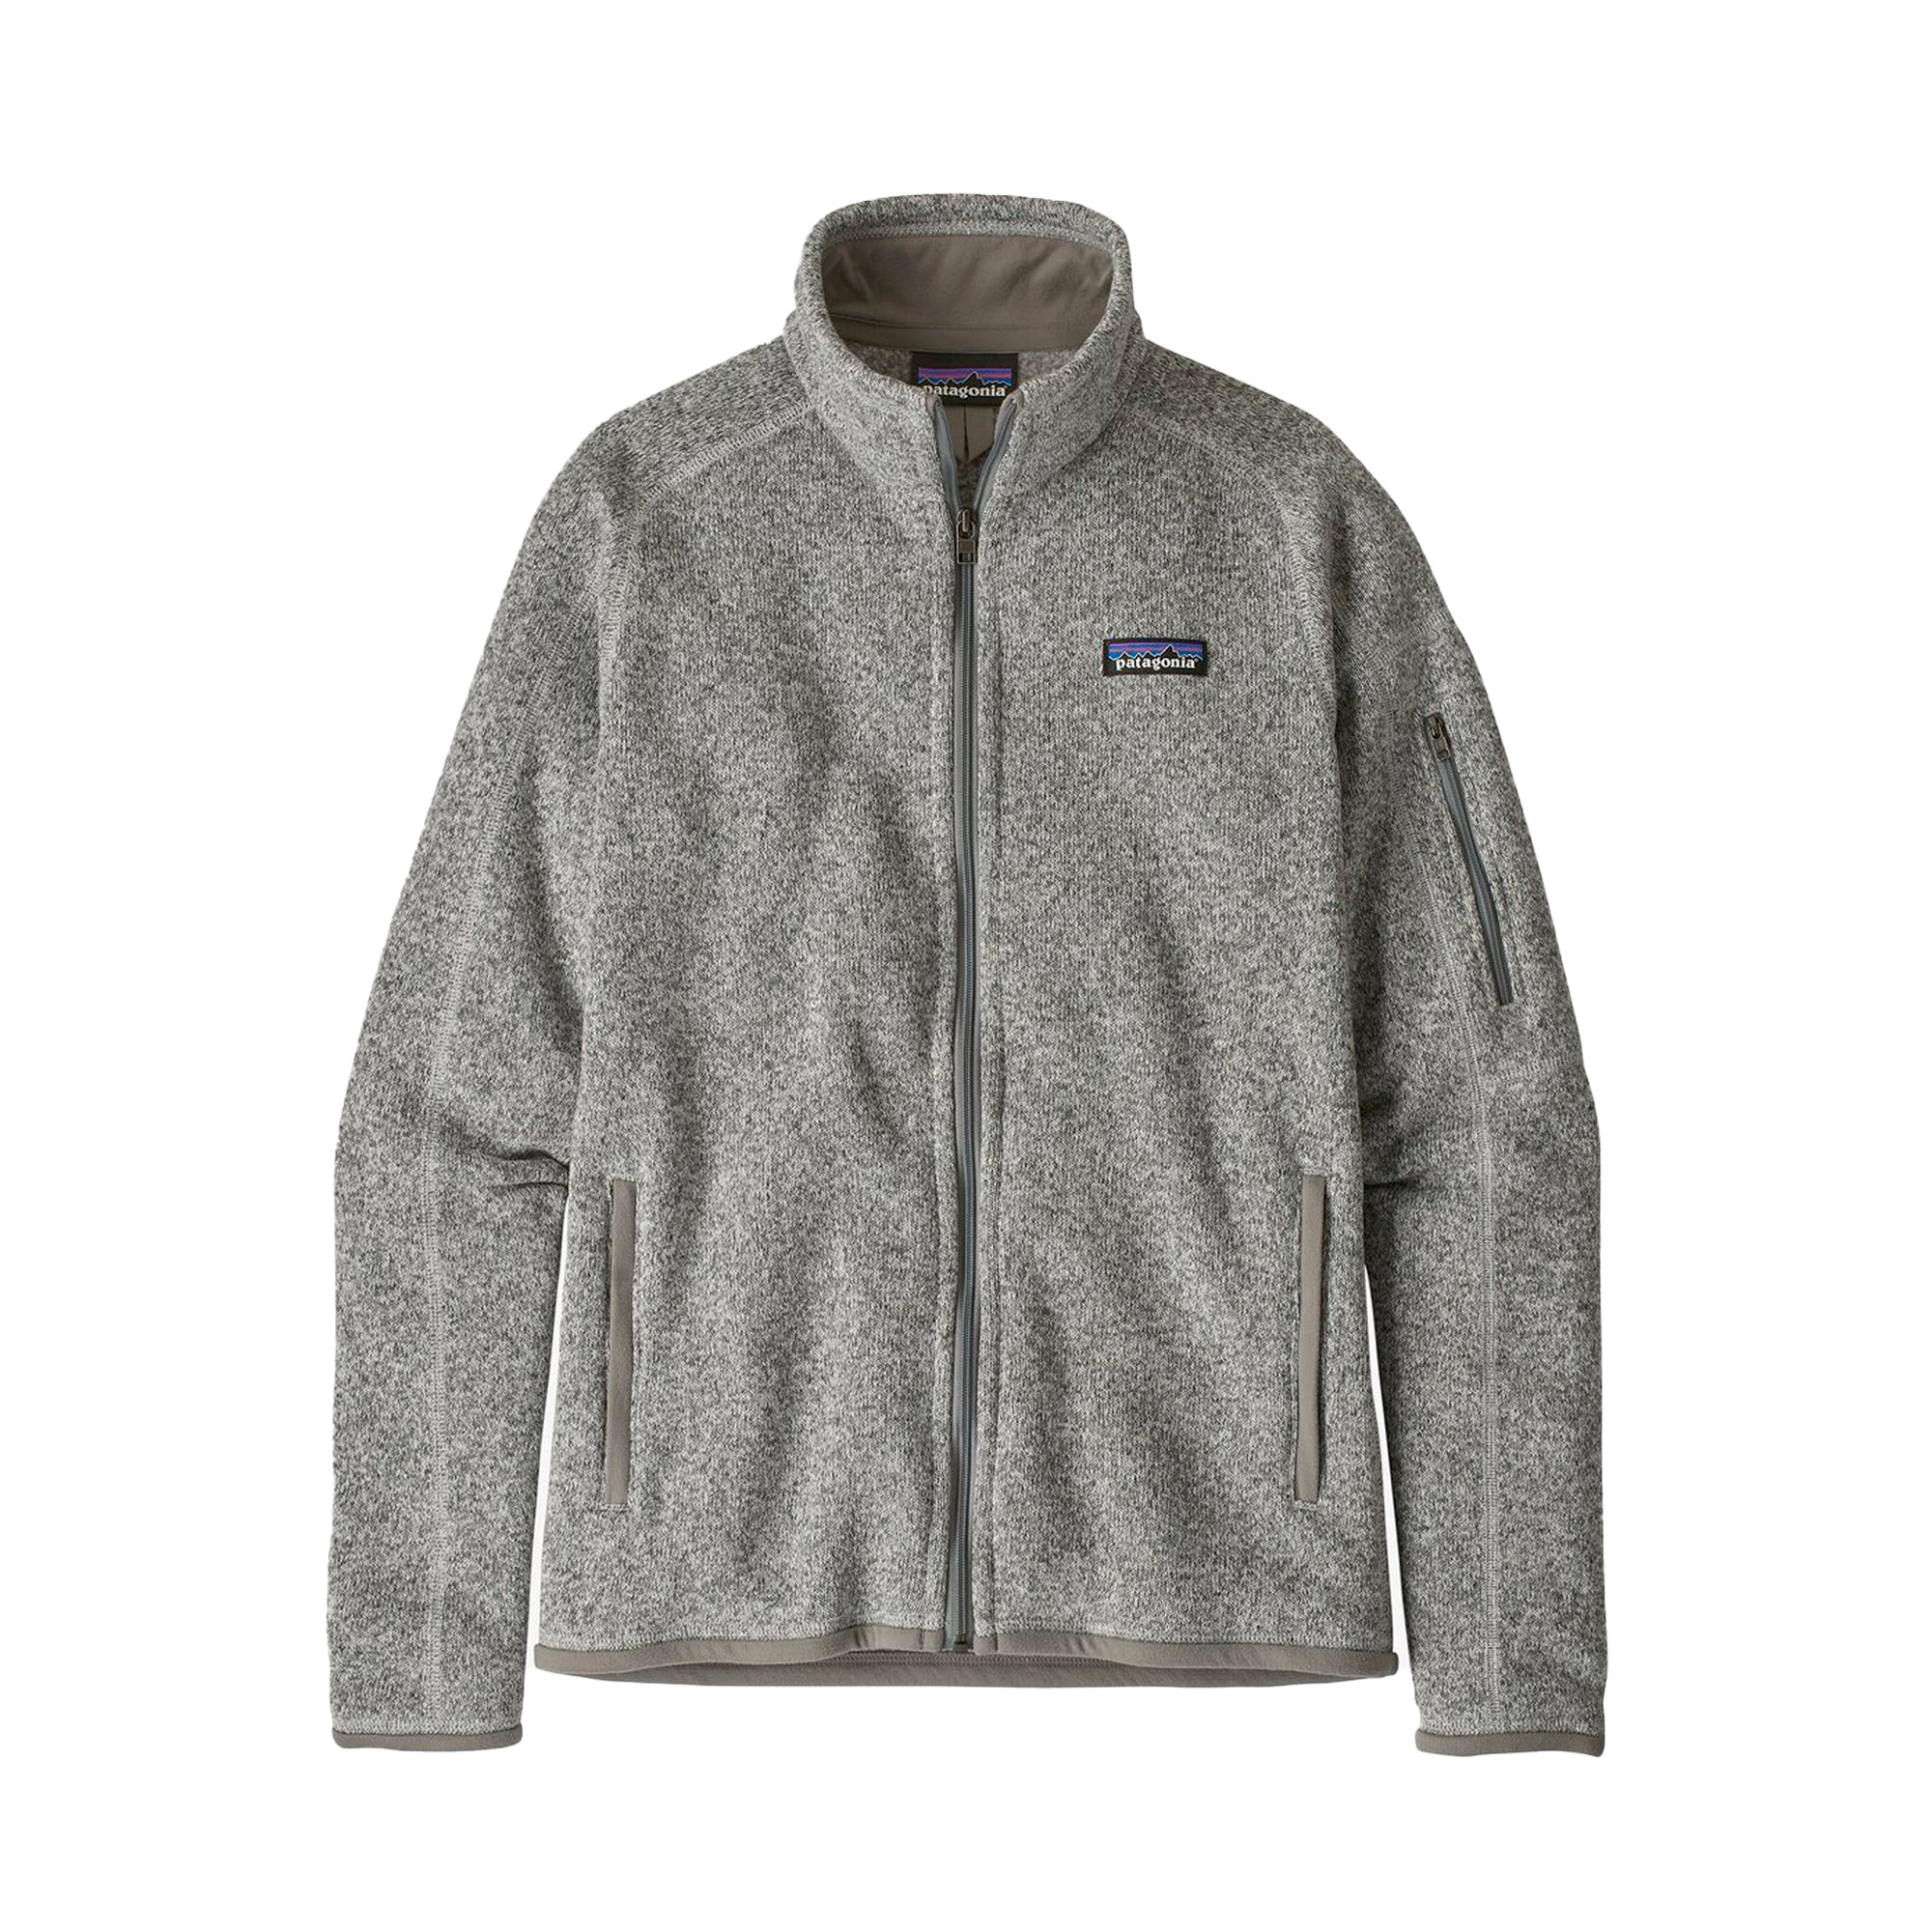 Patagonia Womens Better Sweater Jacket: Birch White - The Union Project